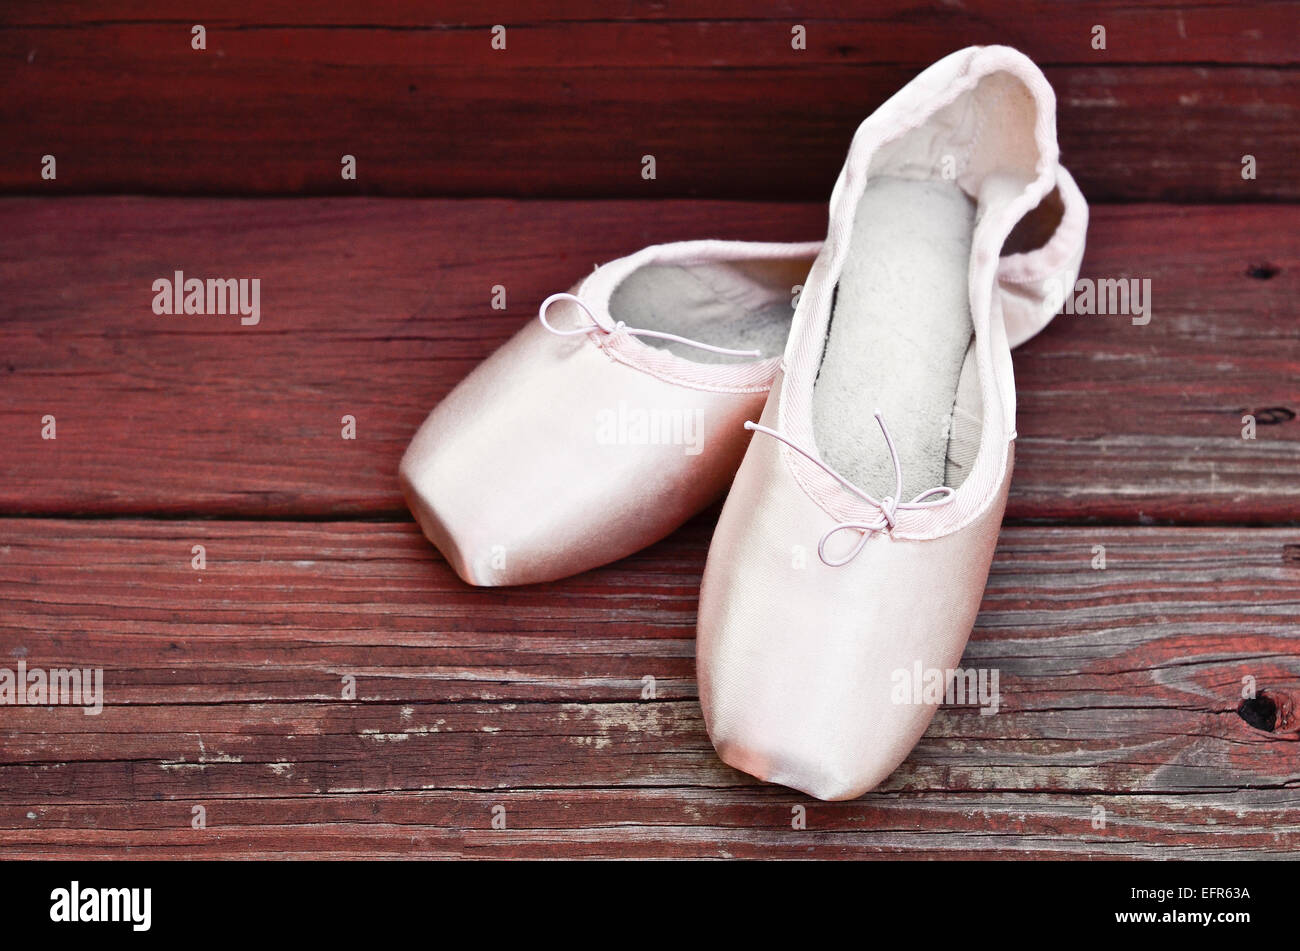 ballet shoes on a wooden floor - Stock Image